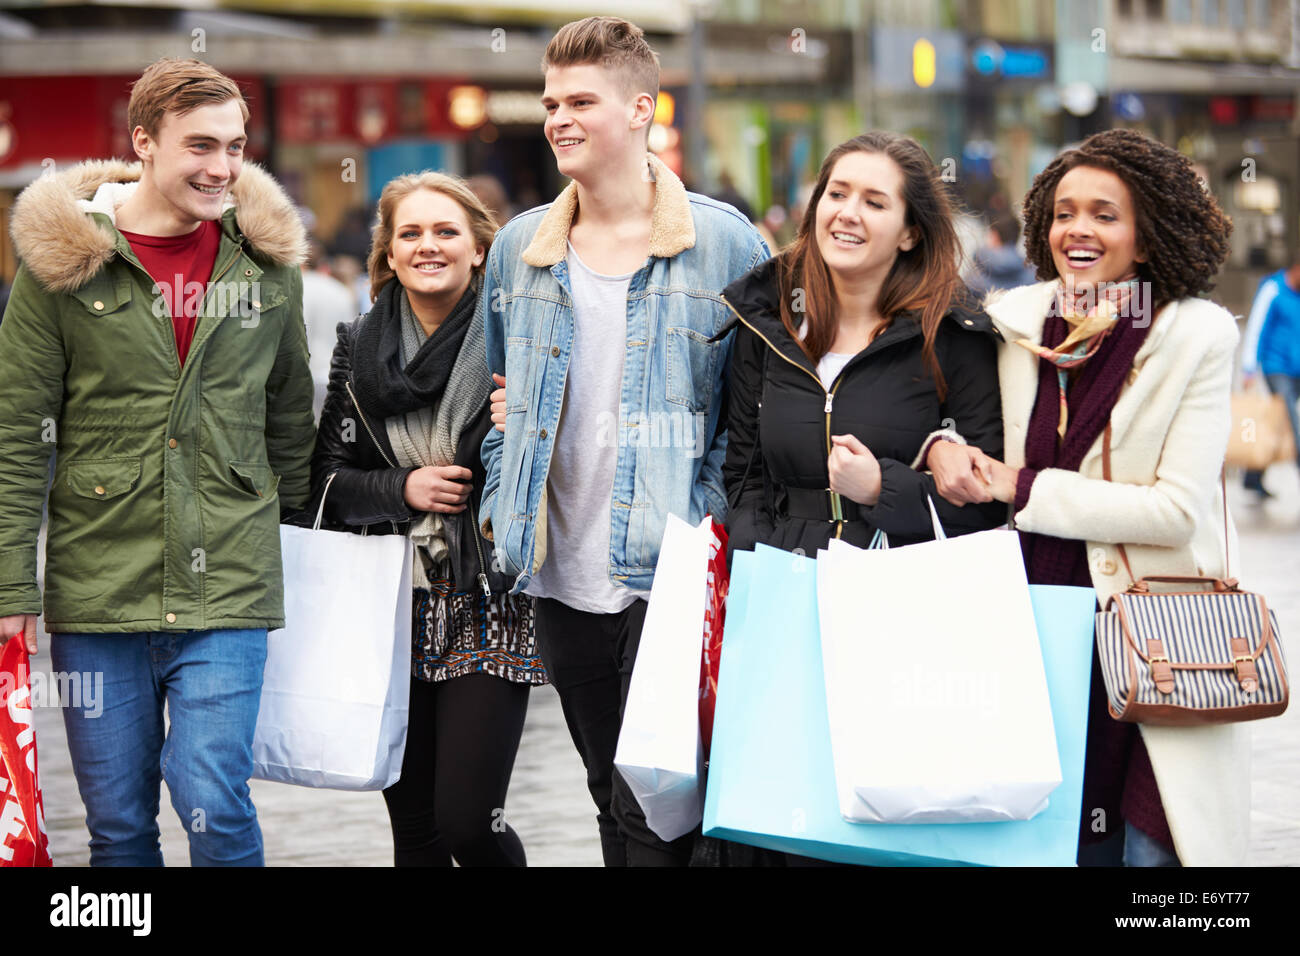 Group Of Young Friends Shopping Outdoors Together - Stock Image